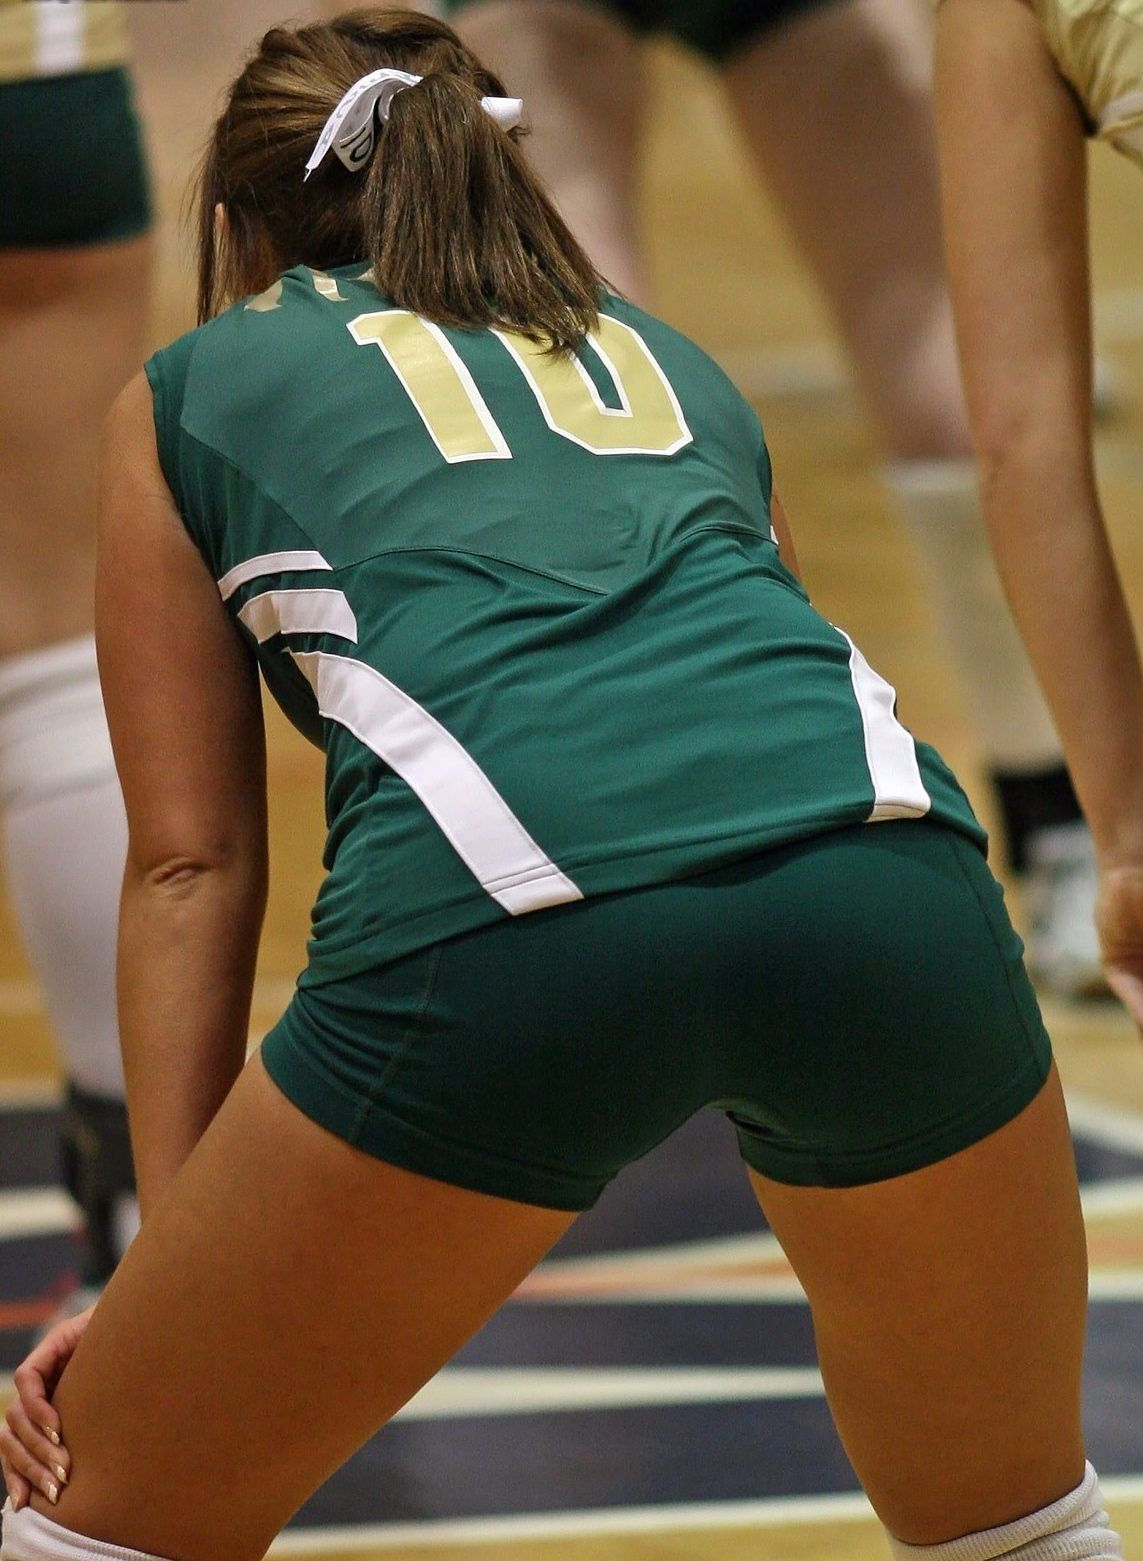 Slutty Volleyball Pretty volleyball shorts pussy - sexpics.download - erotic and porn images